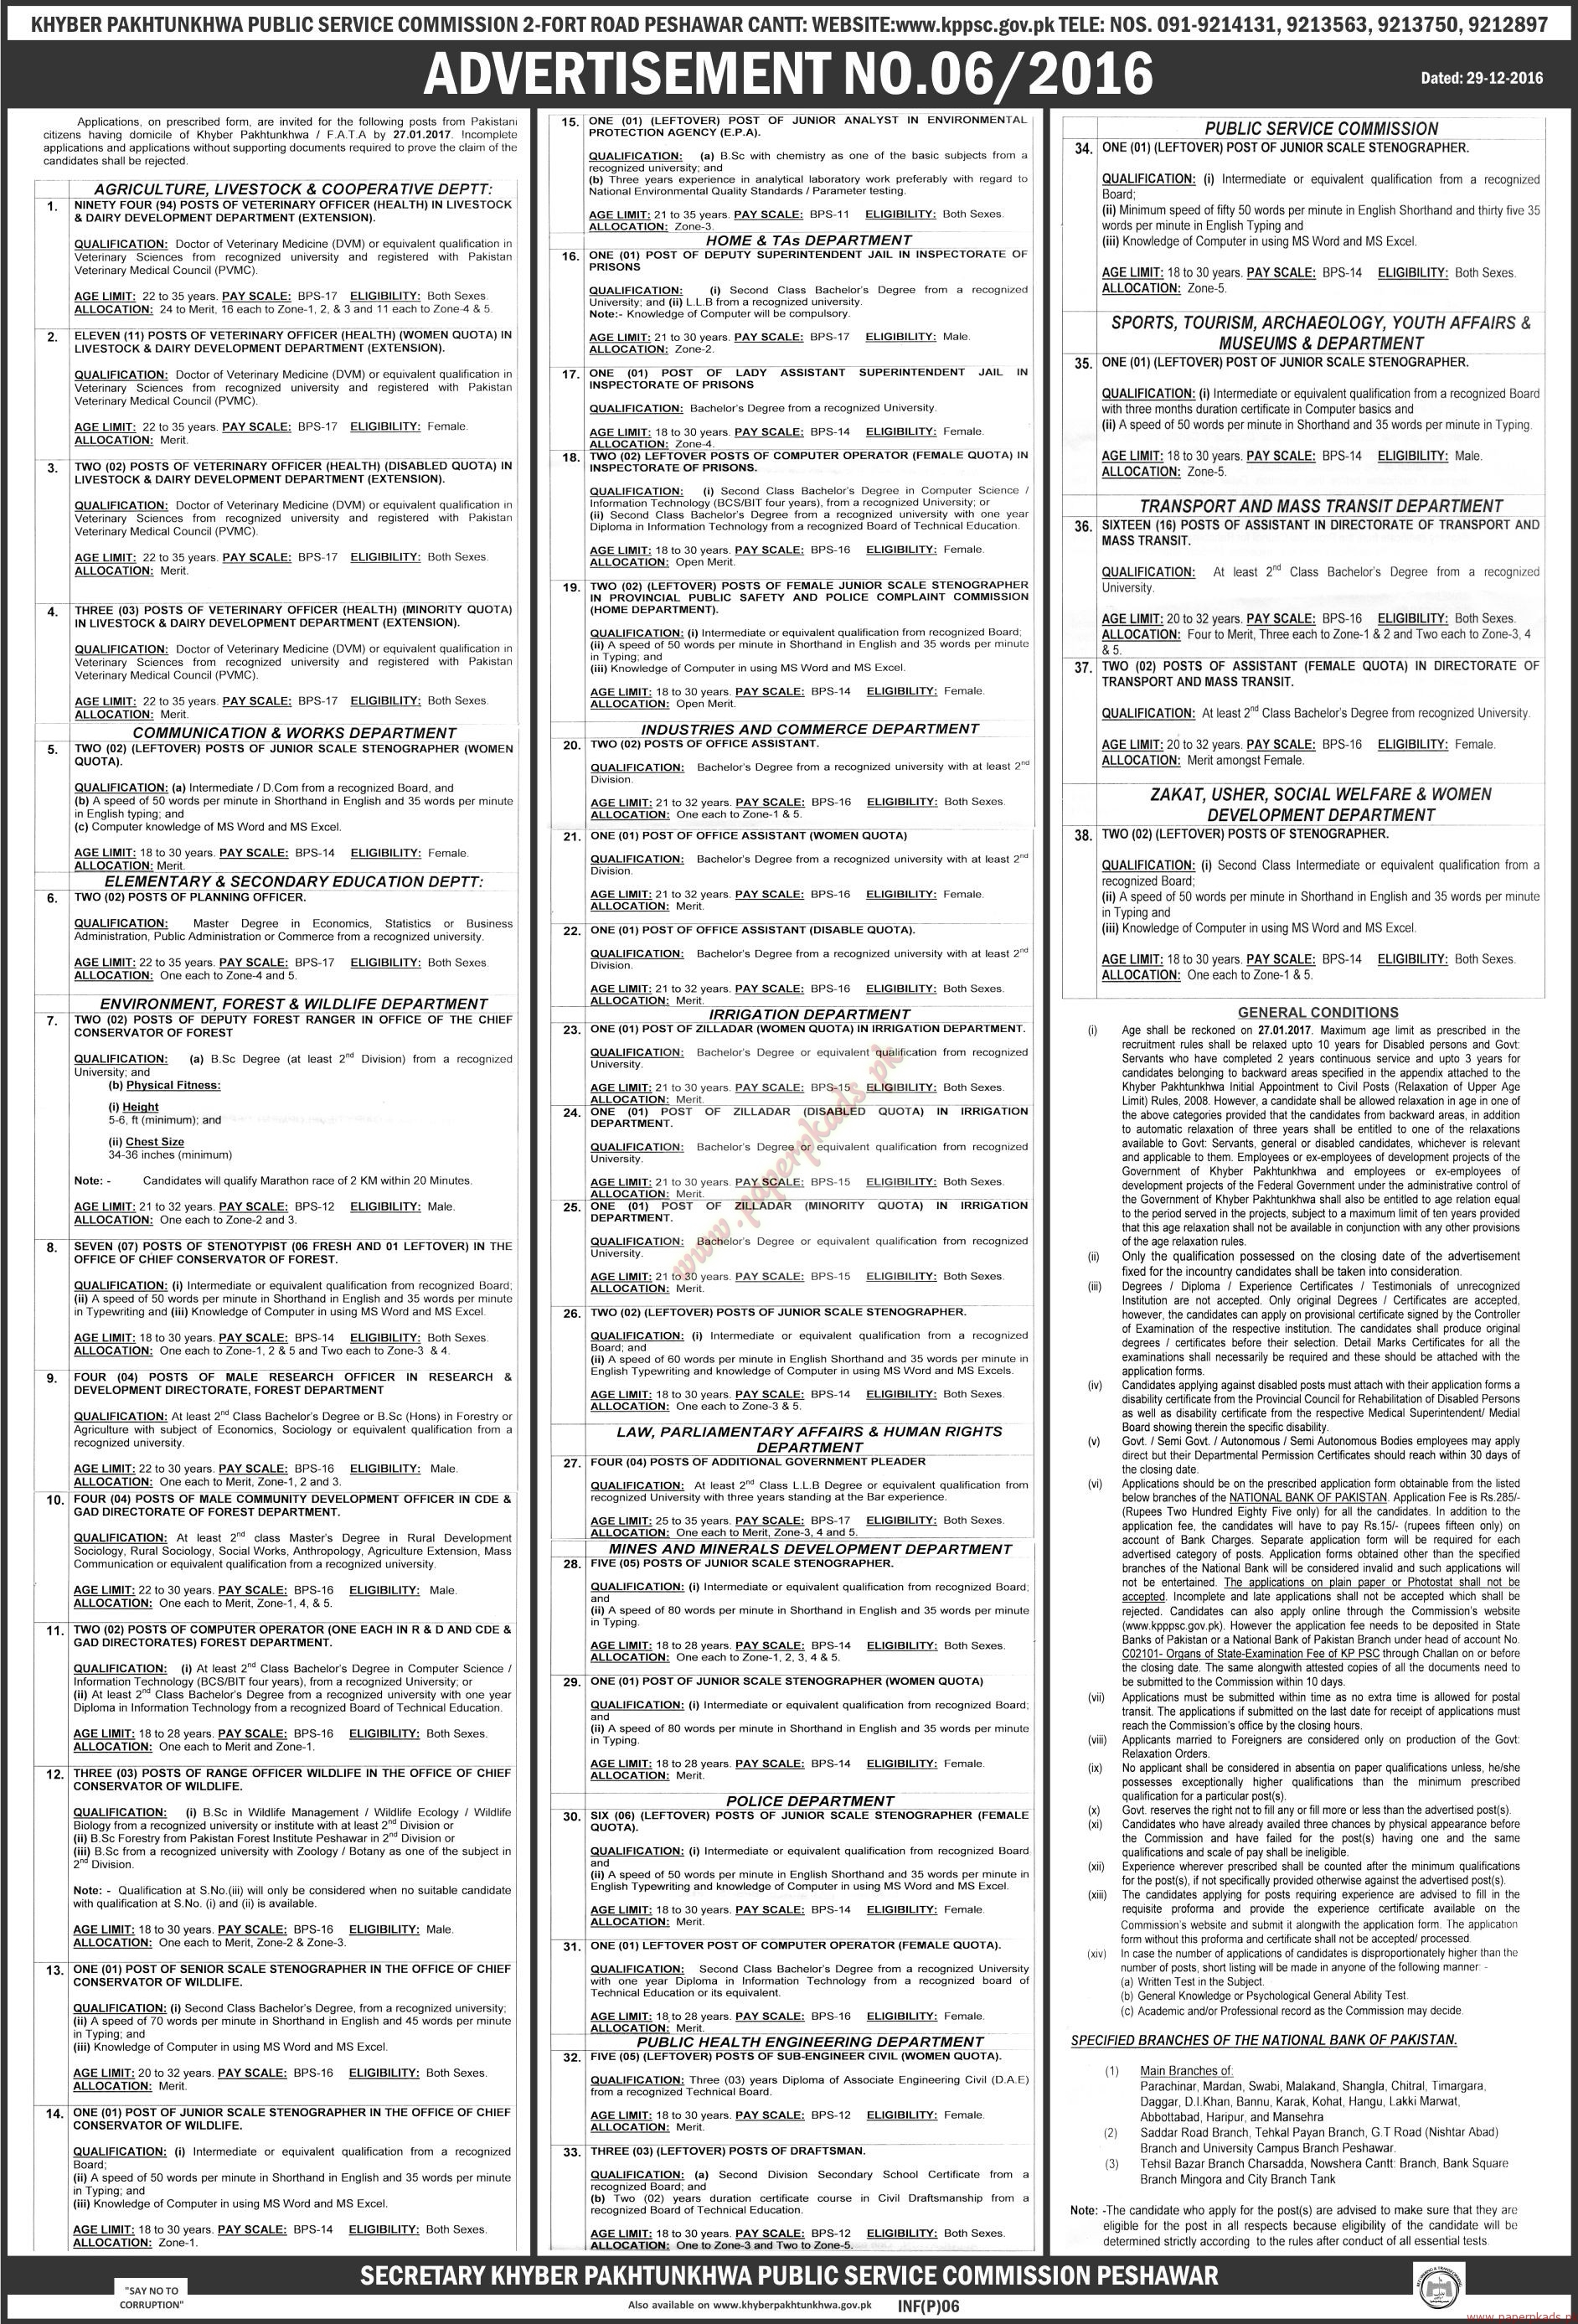 Khyber Pakhtunkhwa Public Service Commission Jobs - The News Jobs ads 04 January 2017